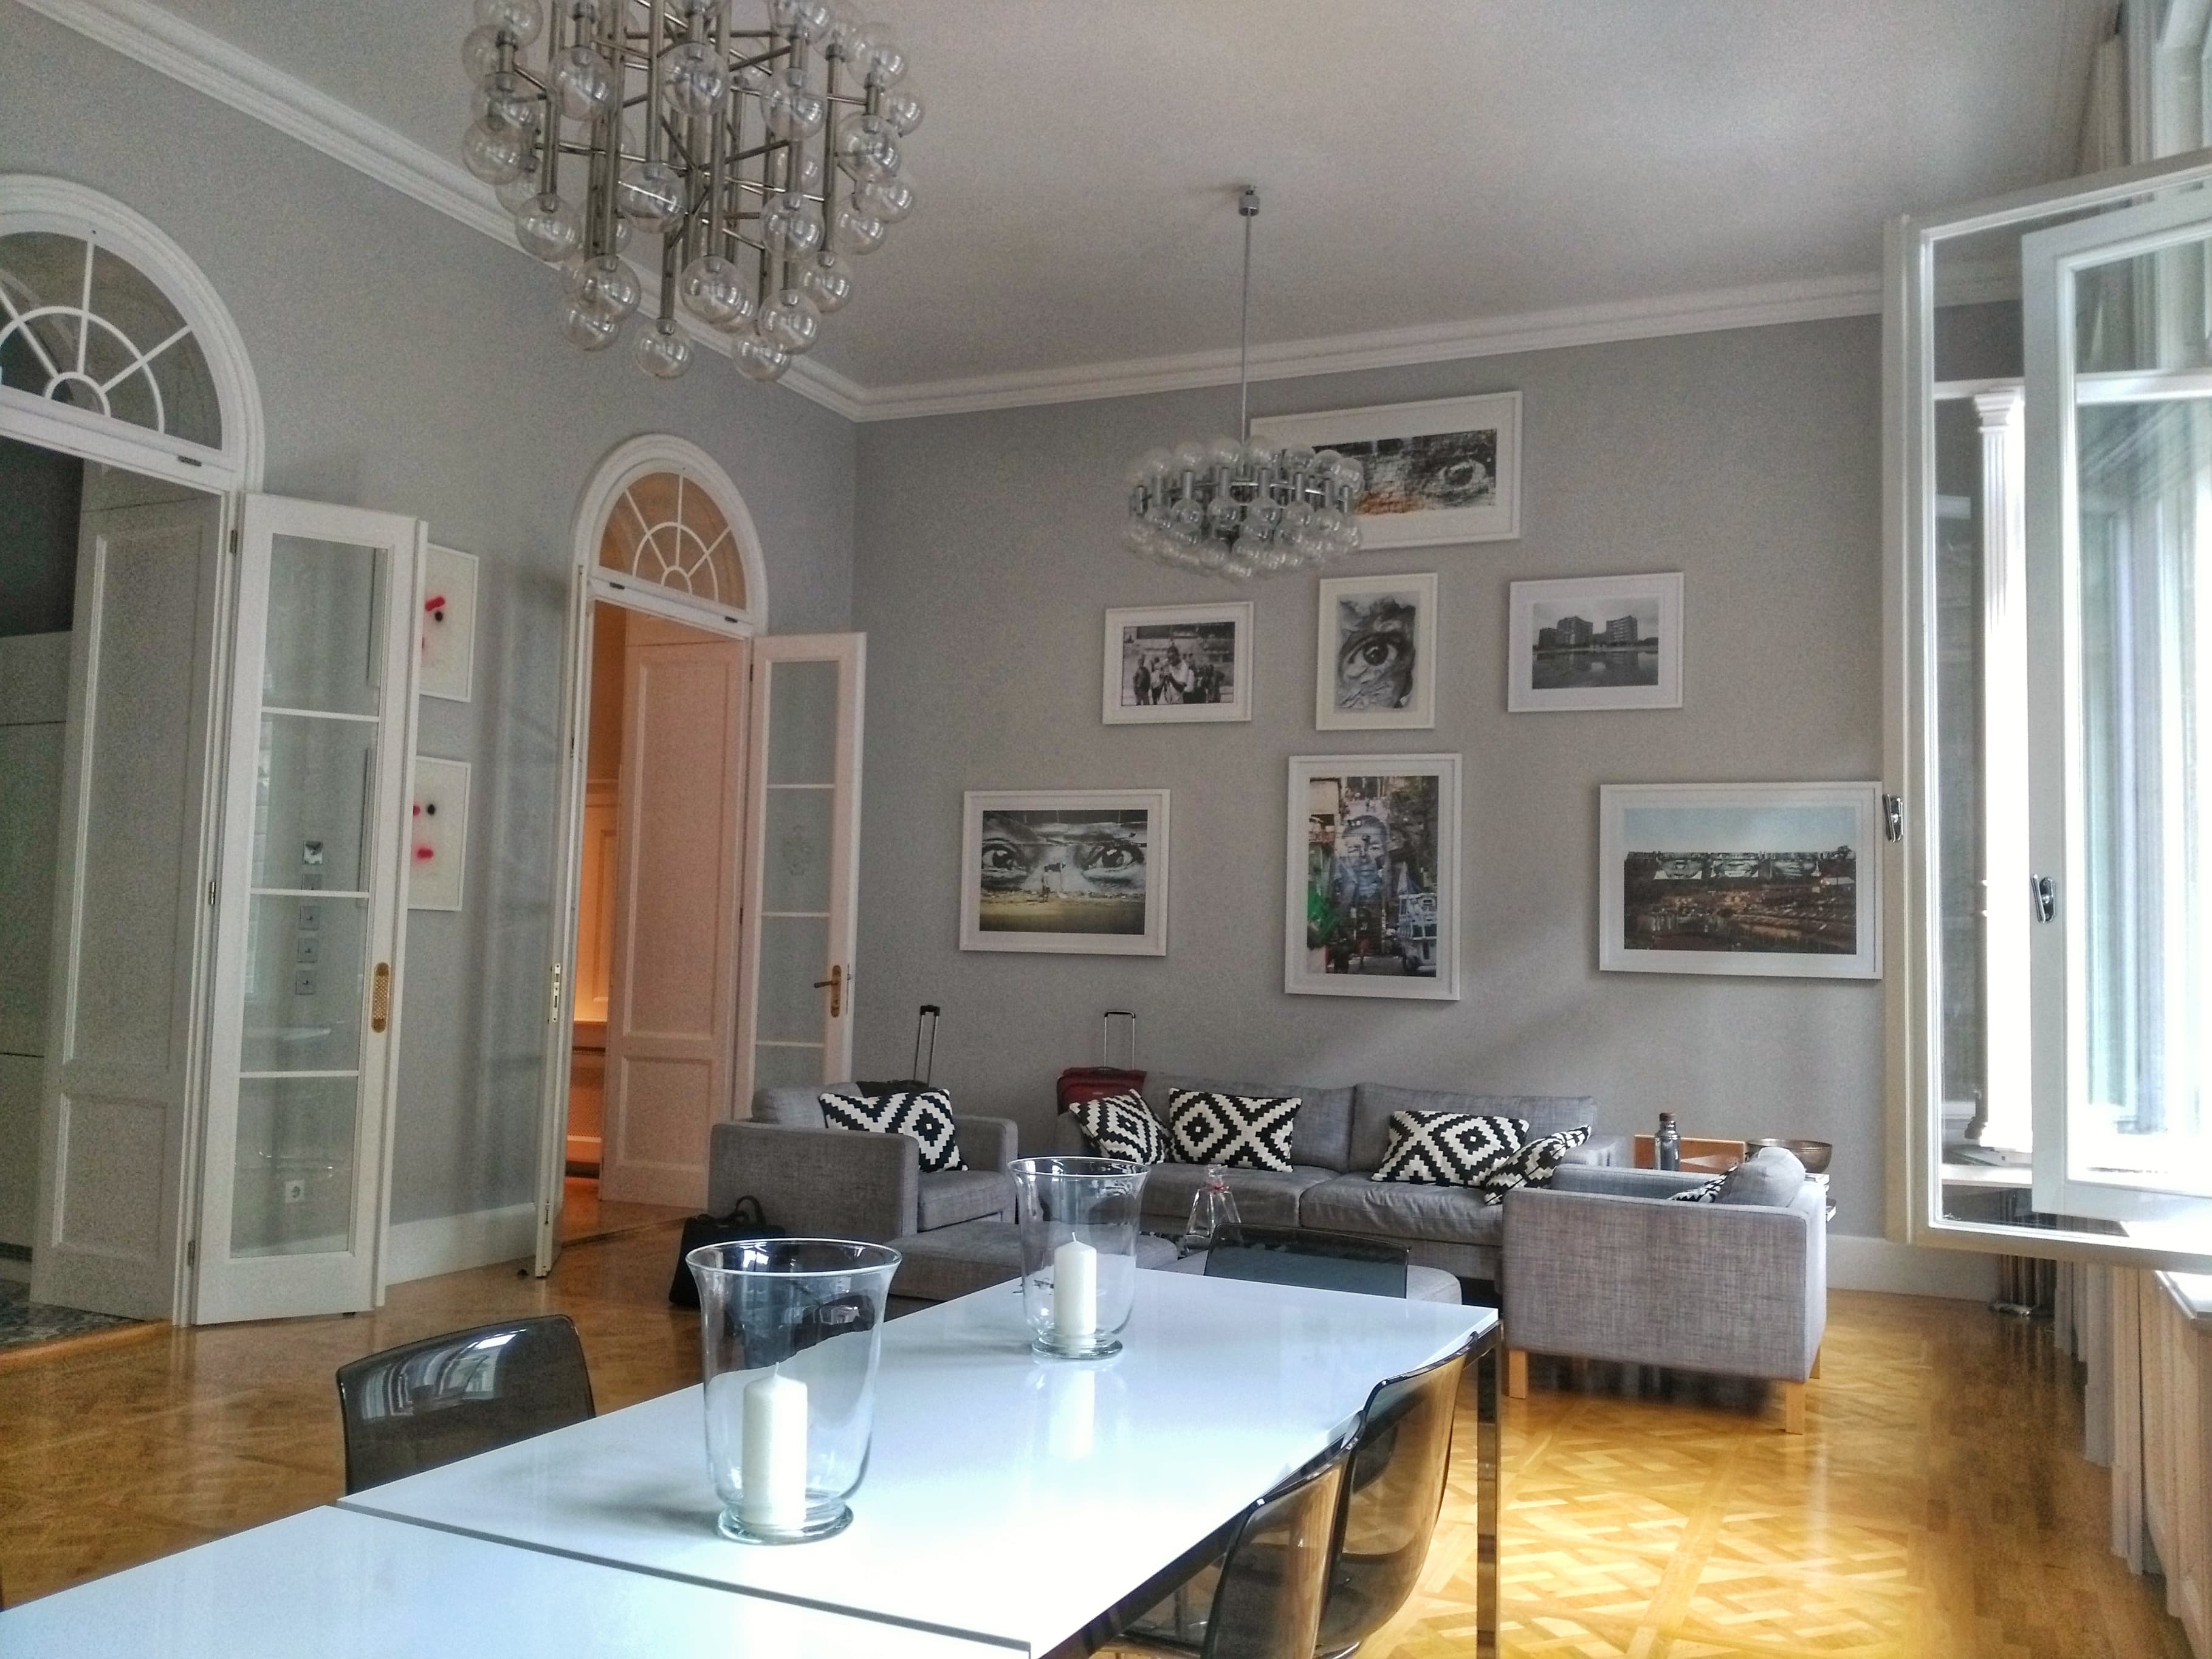 Airbnb or hotel - inside apartment in Budapest